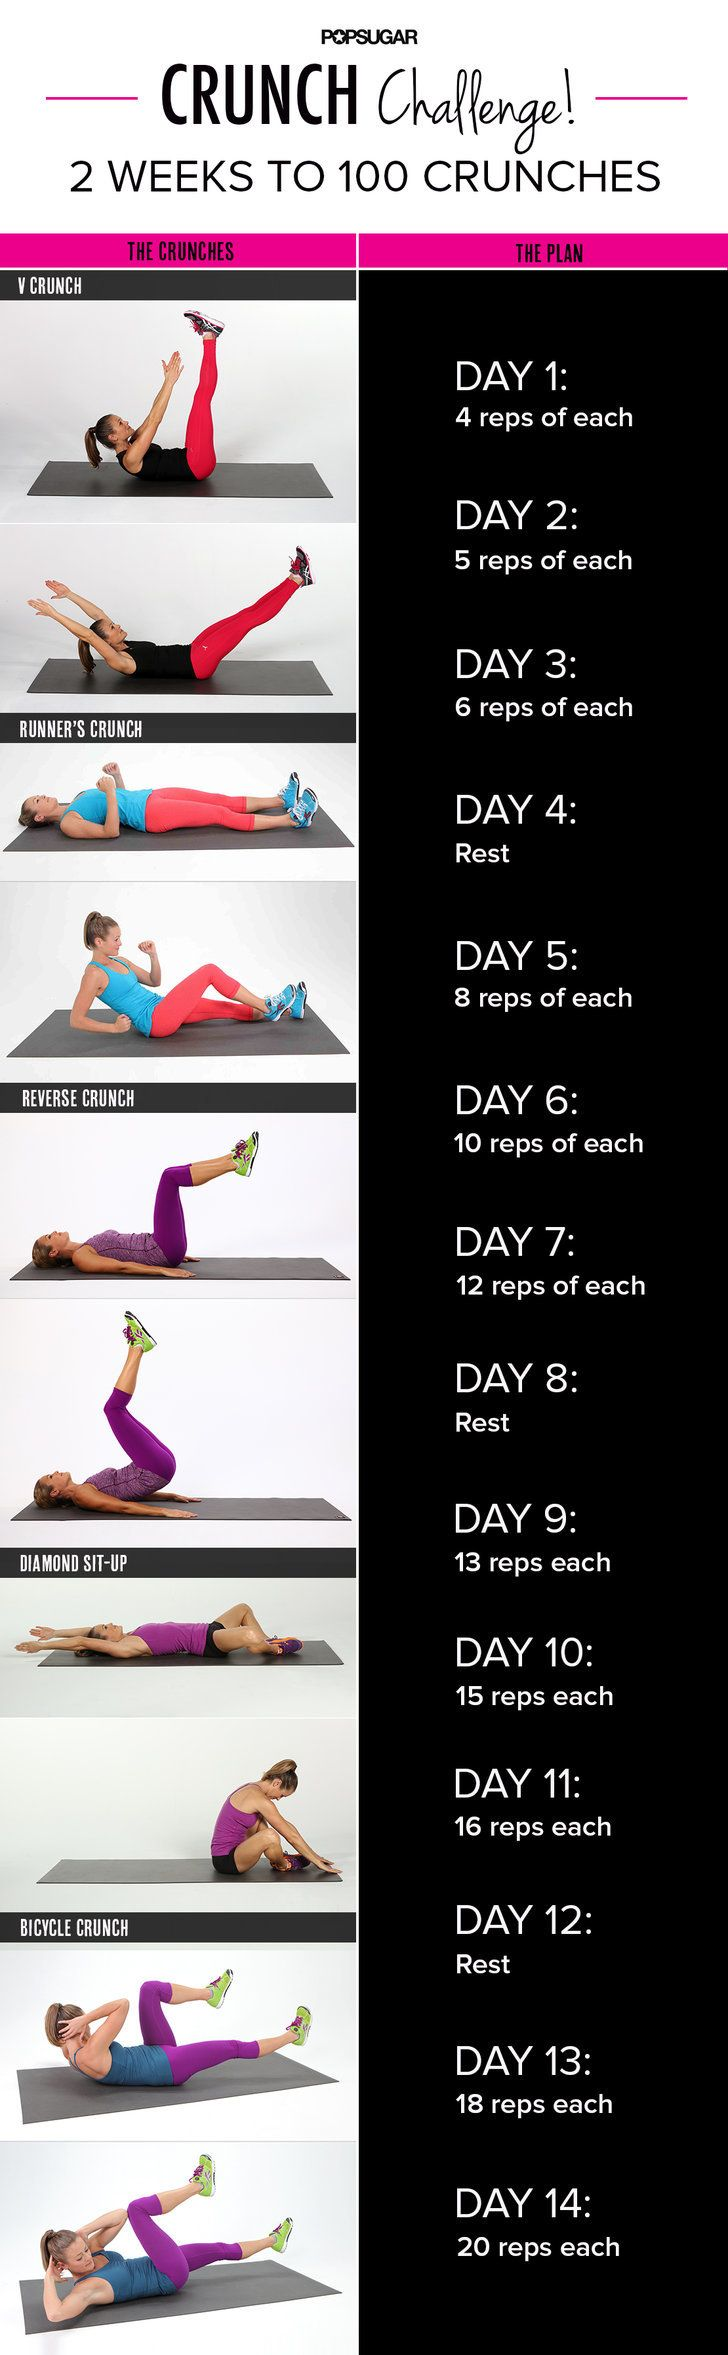 Transform Your Abs With This 2-Week Crunch Challenge